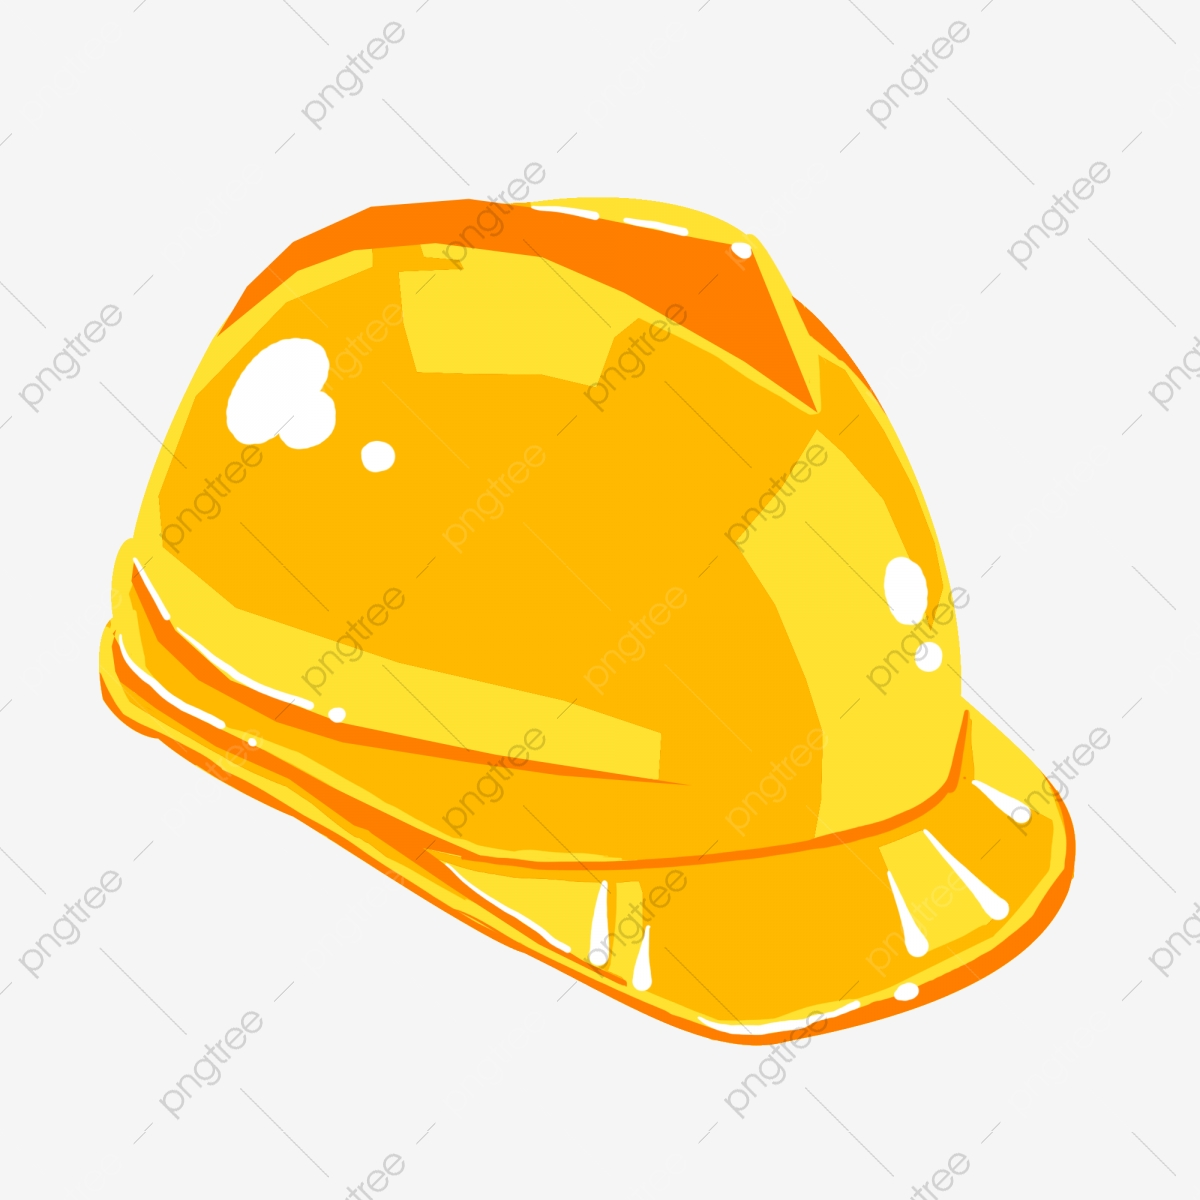 Hard Hat Png Images Vector And Psd Files Free Download On Pngtree